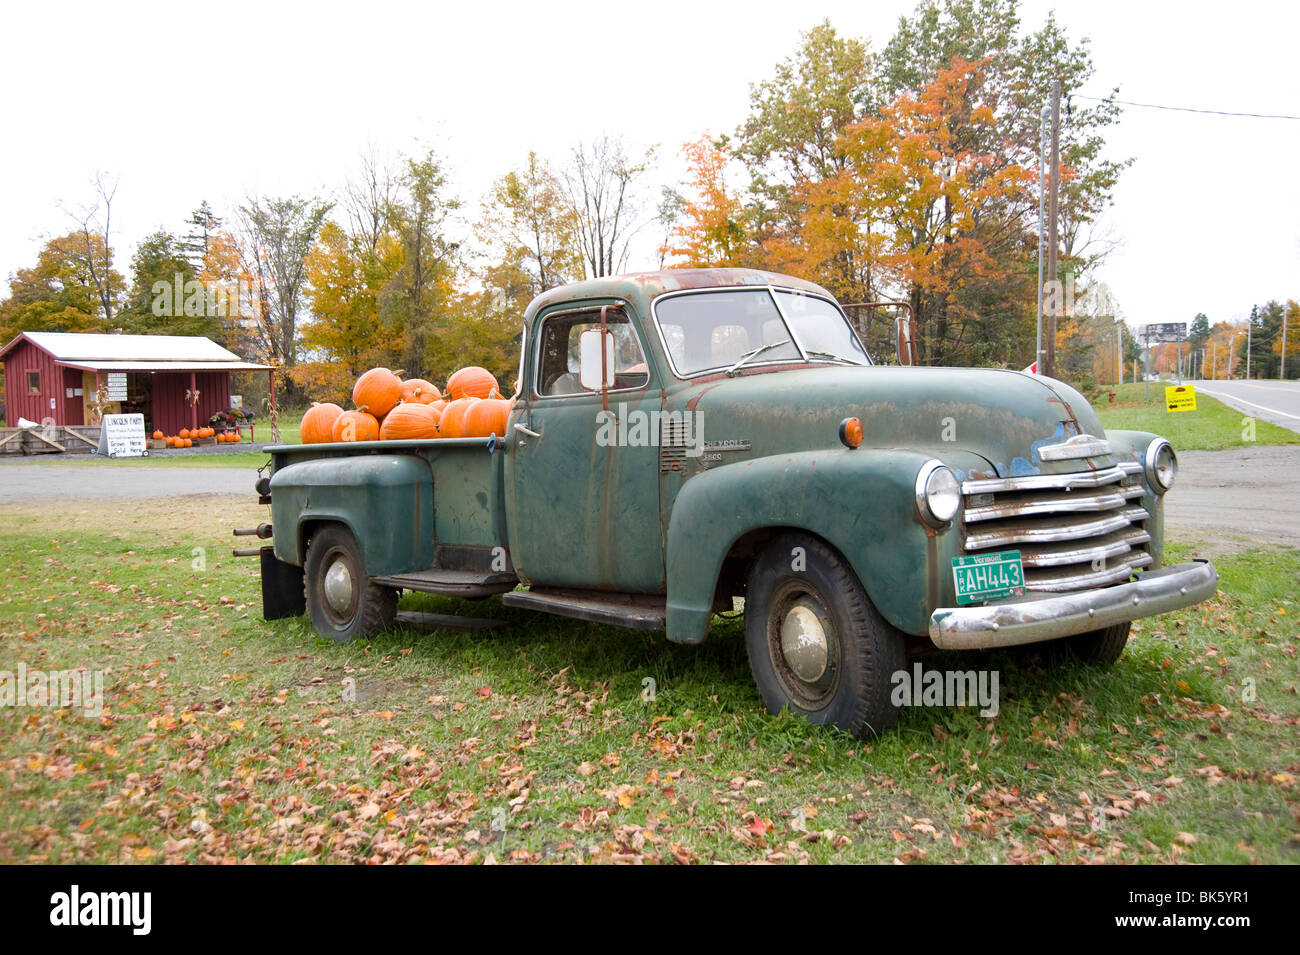 Old Truck Pickup Chevrolet Stock Photos & Old Truck Pickup Chevrolet ...